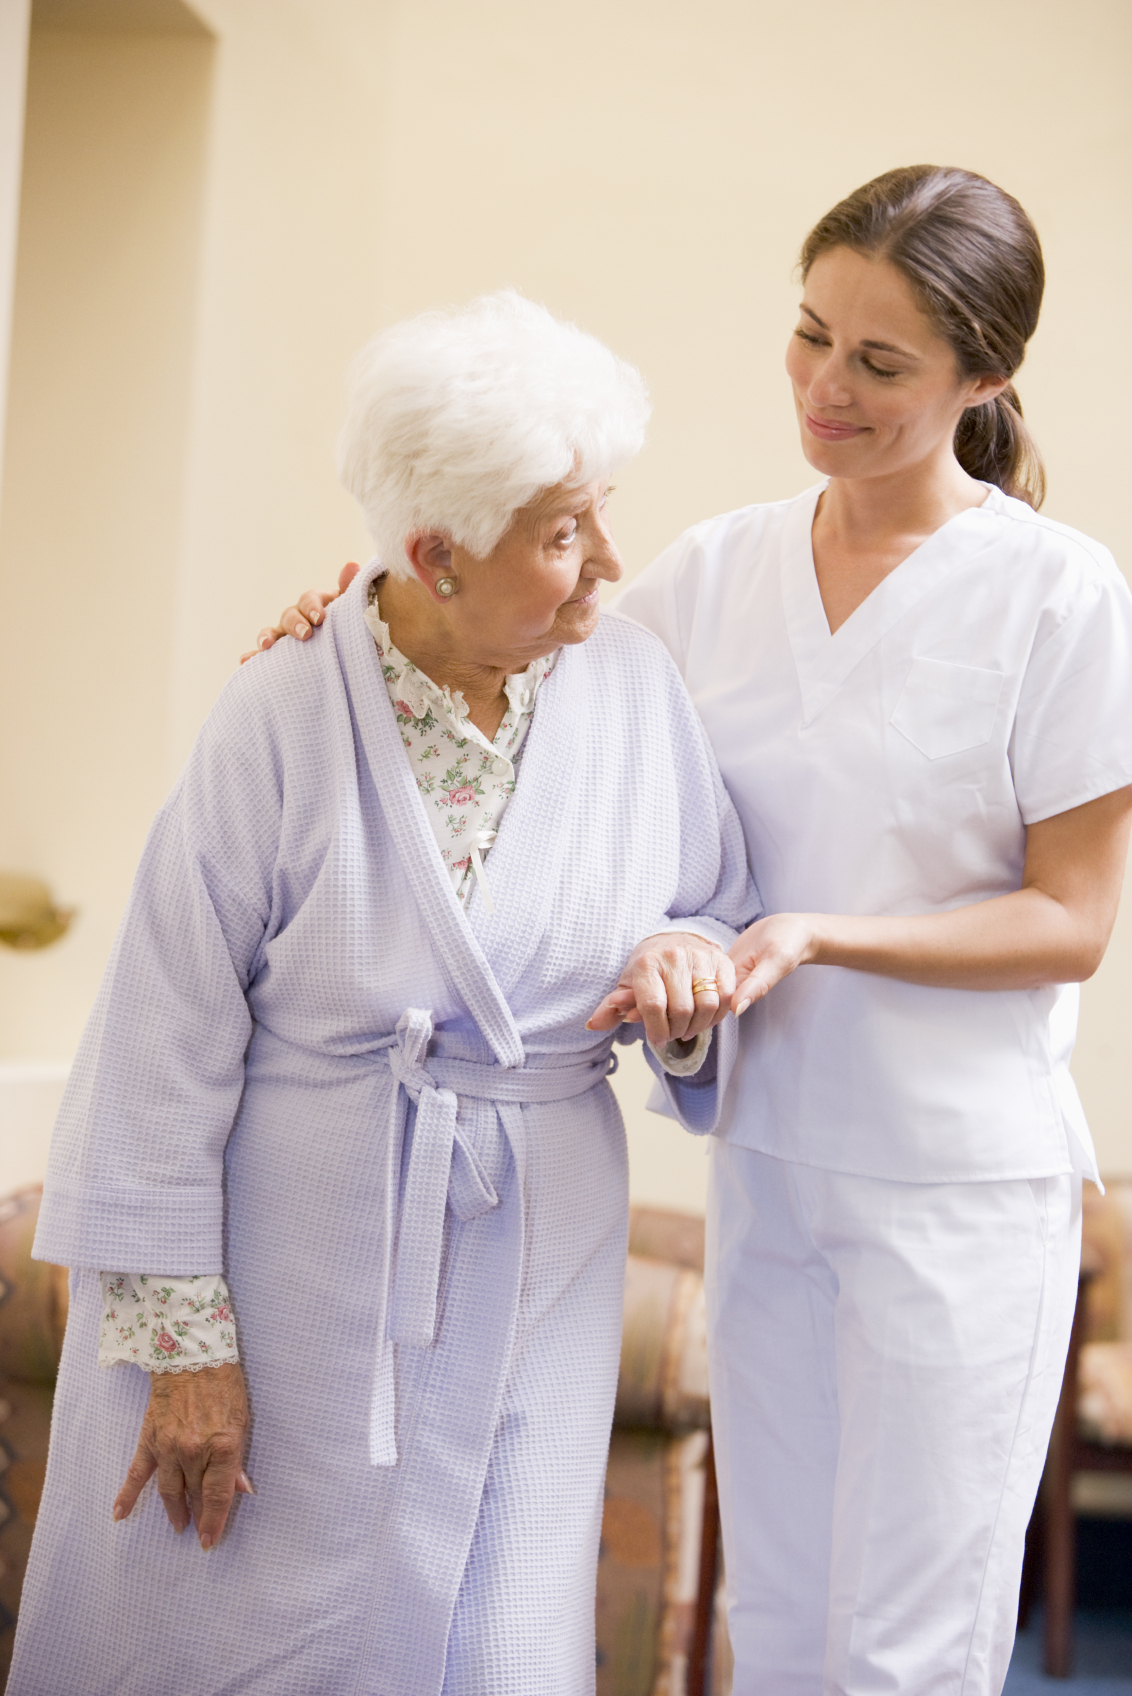 CNA-walking-with-patient